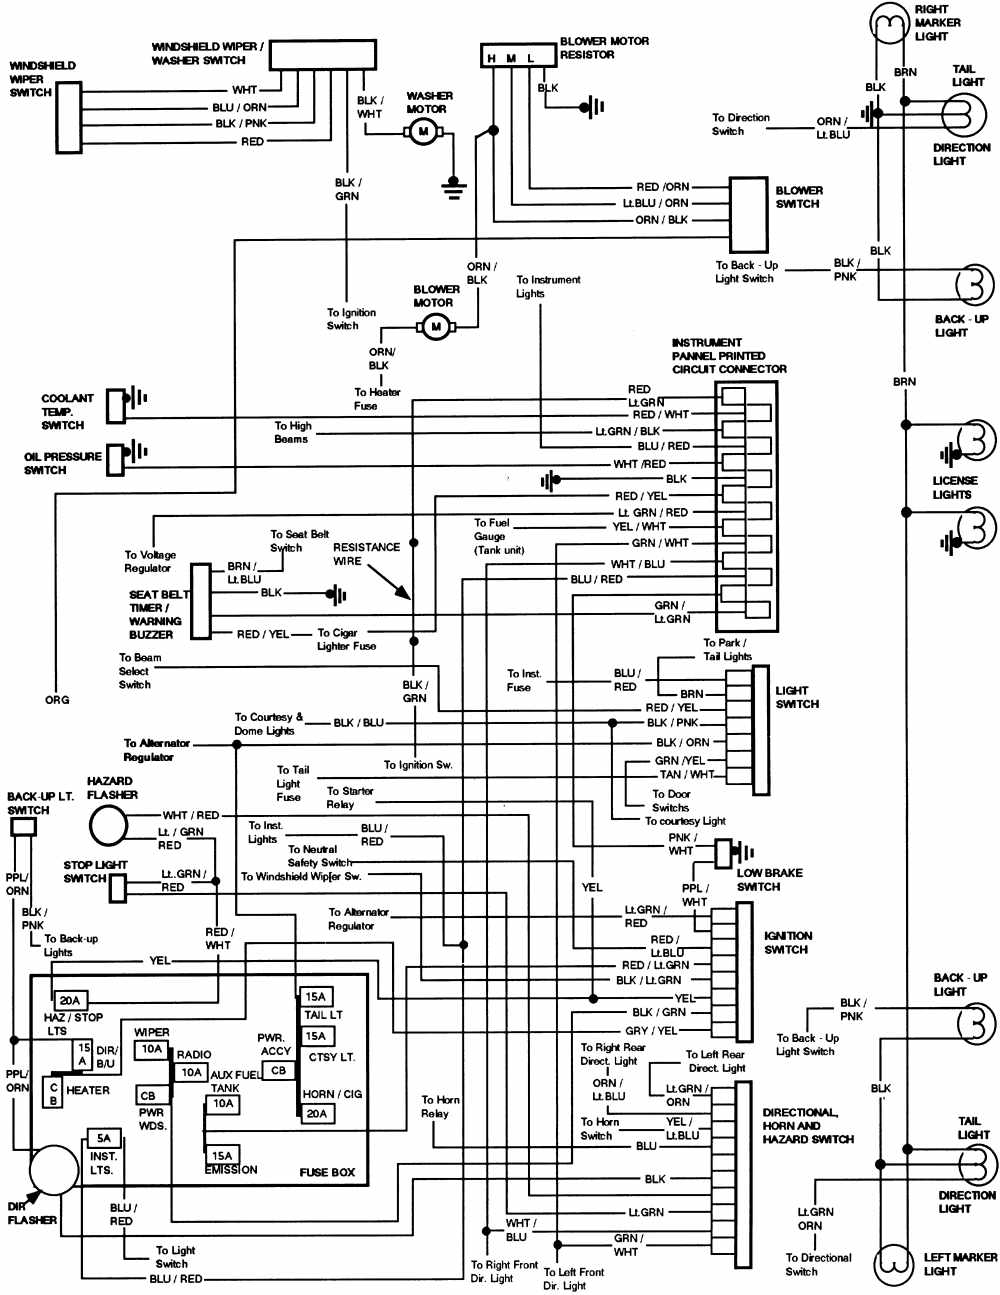 2006 Ford E150 Fuse Box Diagram Gfi Wiring Bronco 1984 Instrument Panel | All About Diagrams